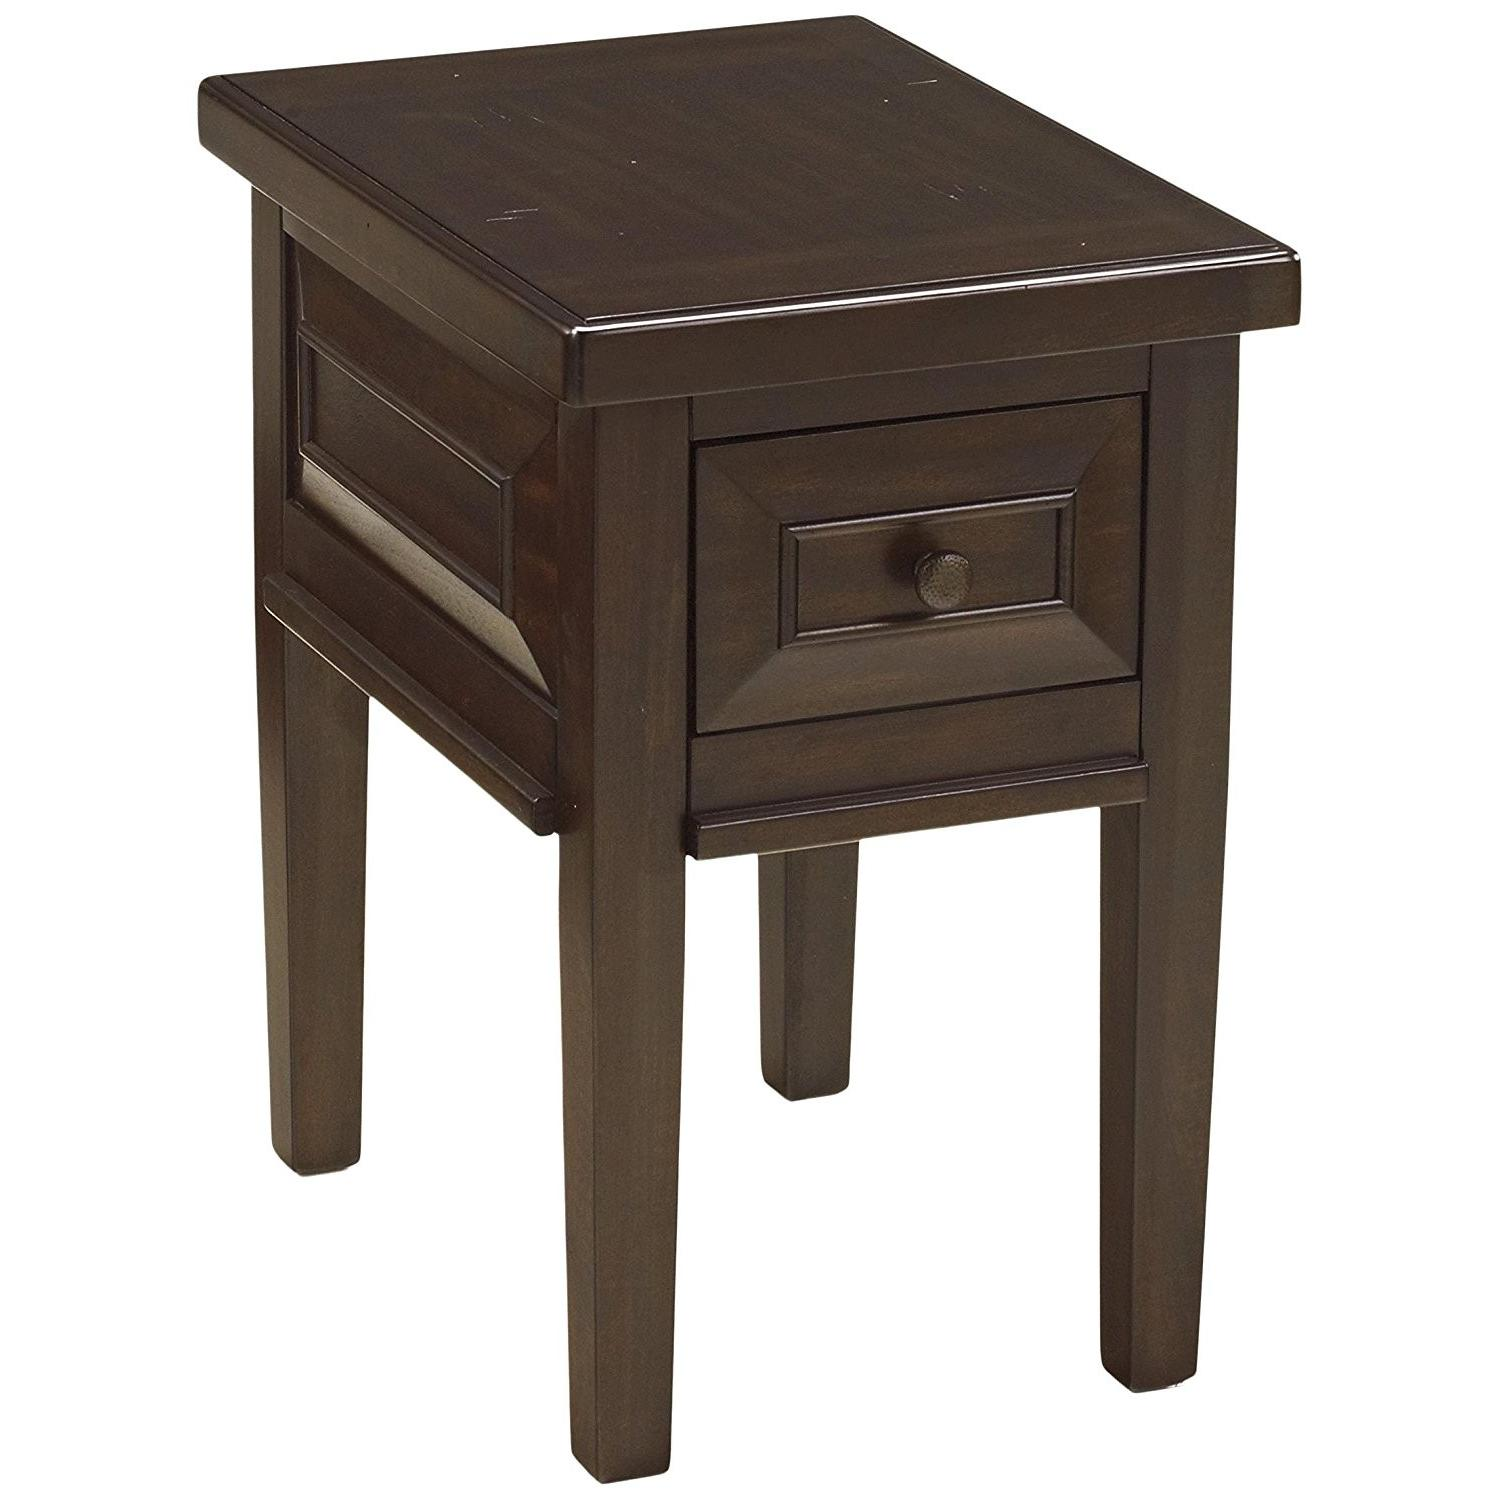 Ashley Furniture Hindell Park Rustic Brown Square End Table